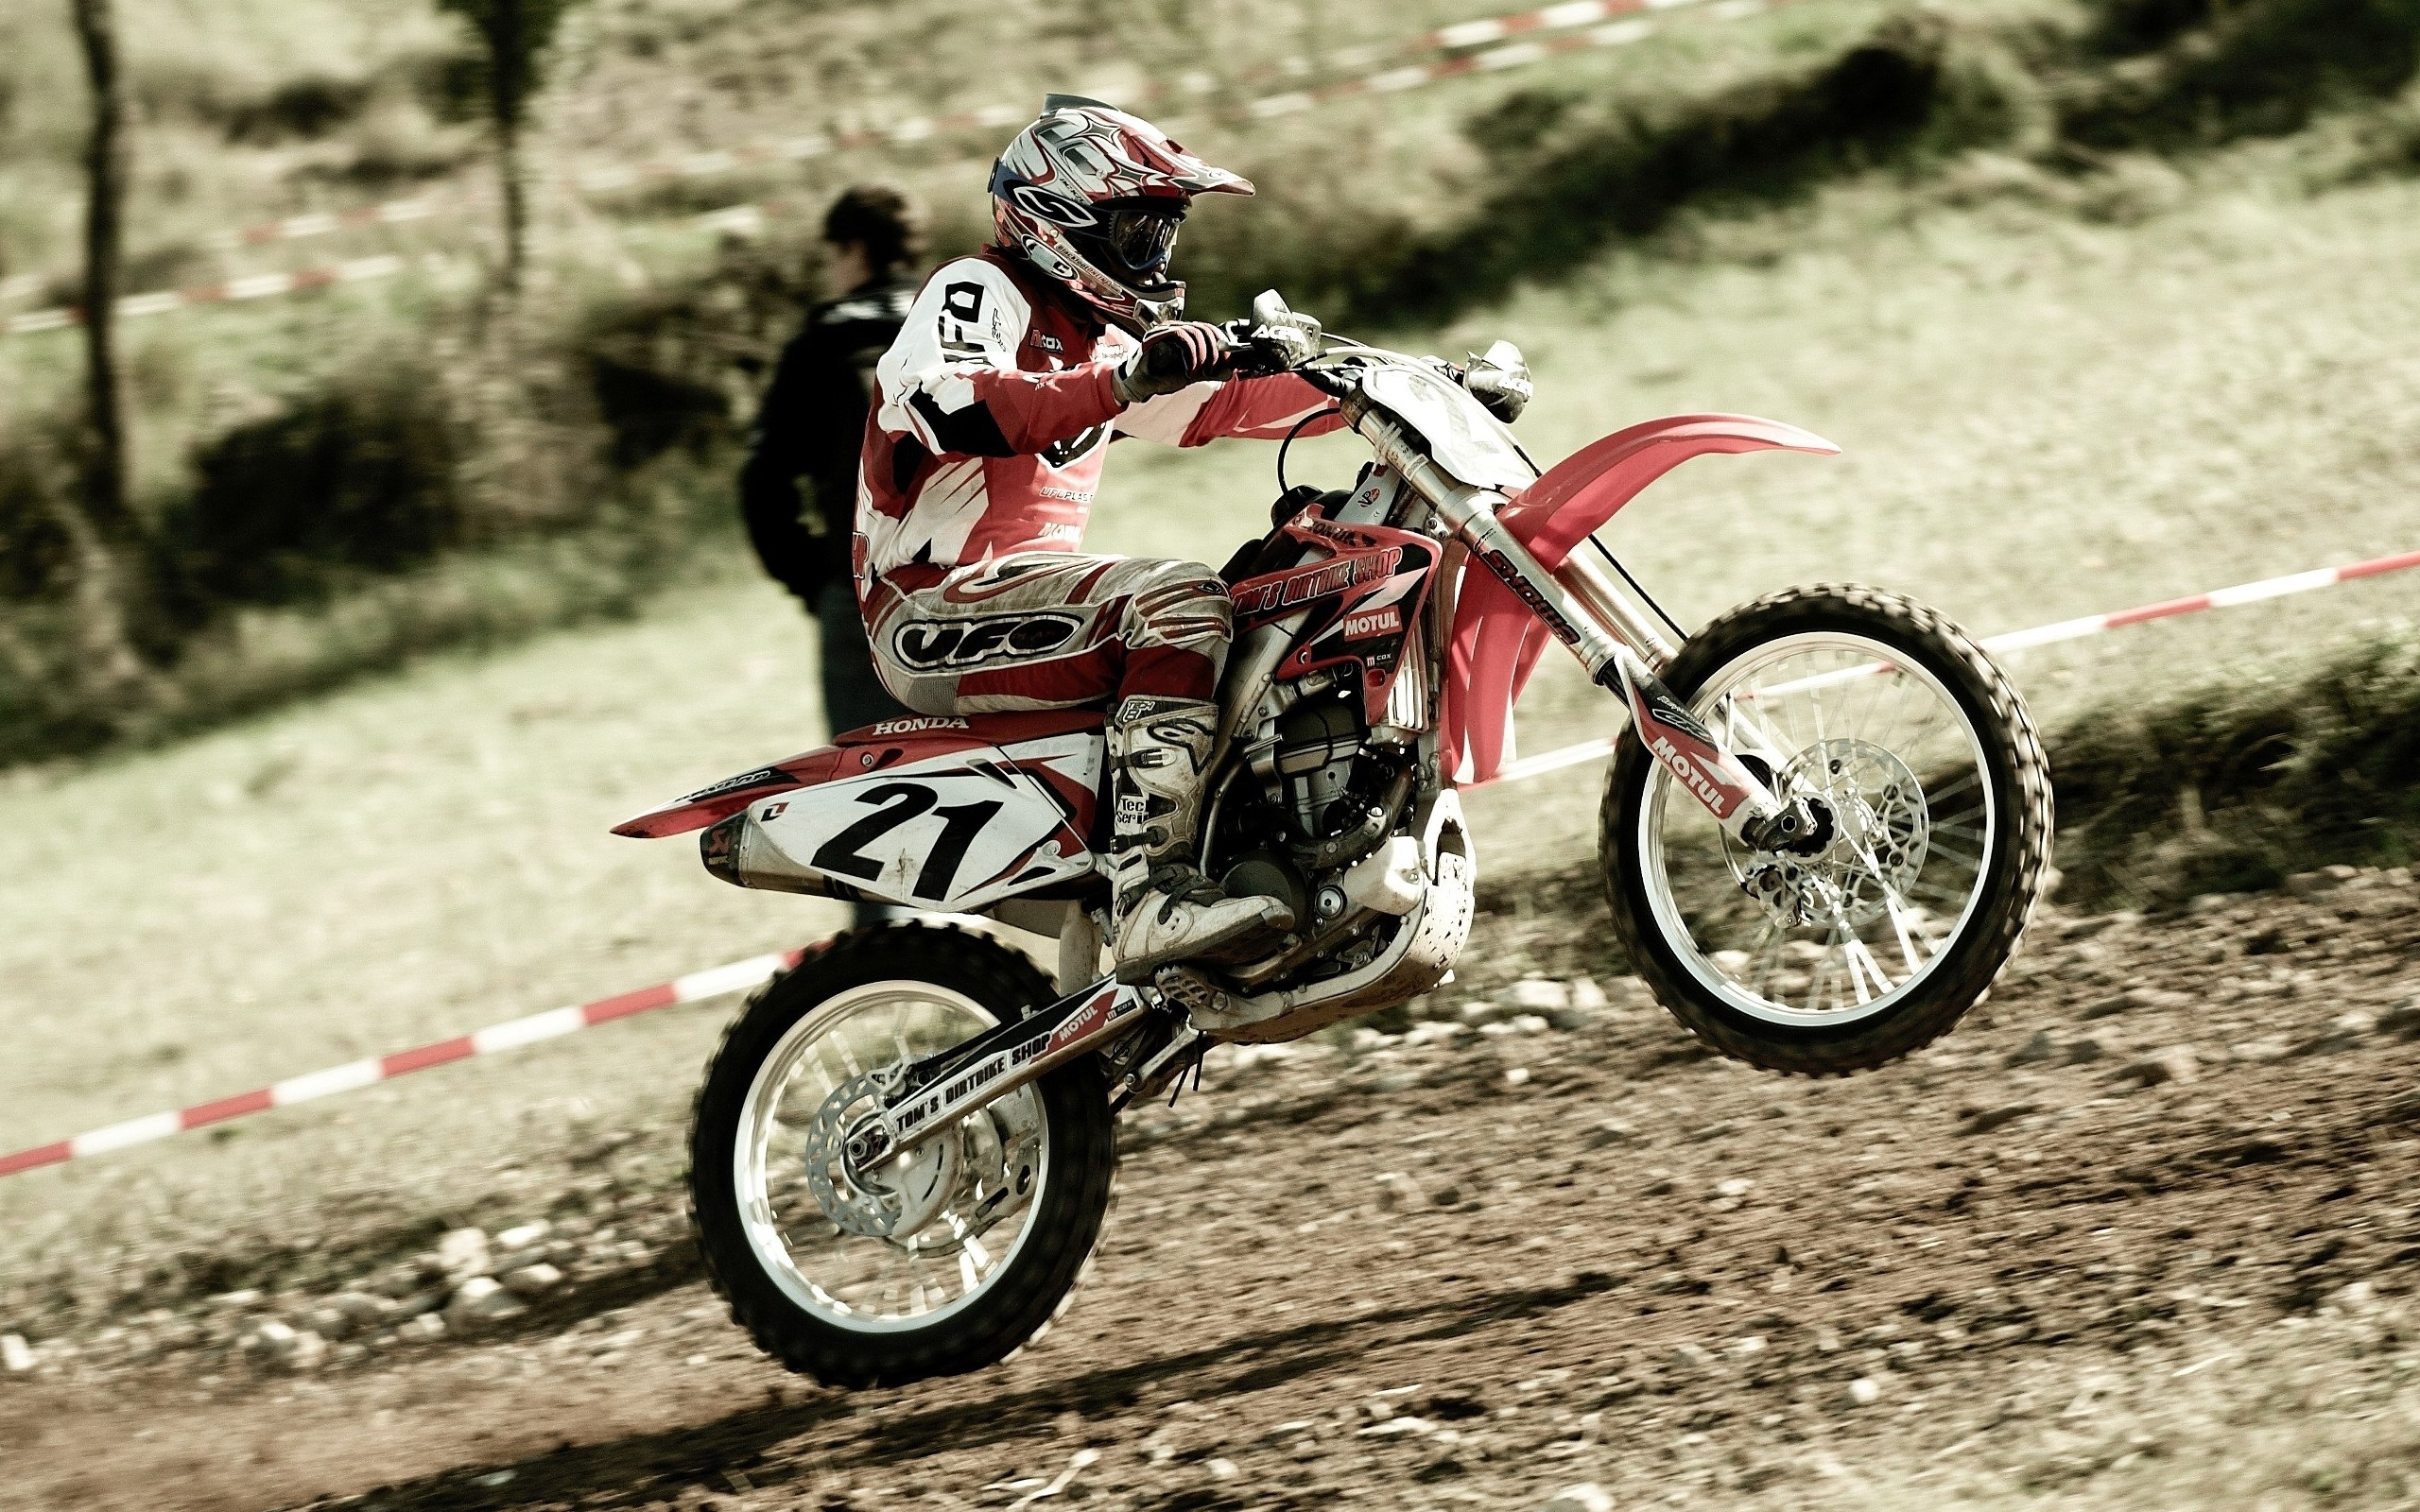 Motocross wallpaper free hd wallpapers page 0 wallpaperlepi - Motocross Wallpaper